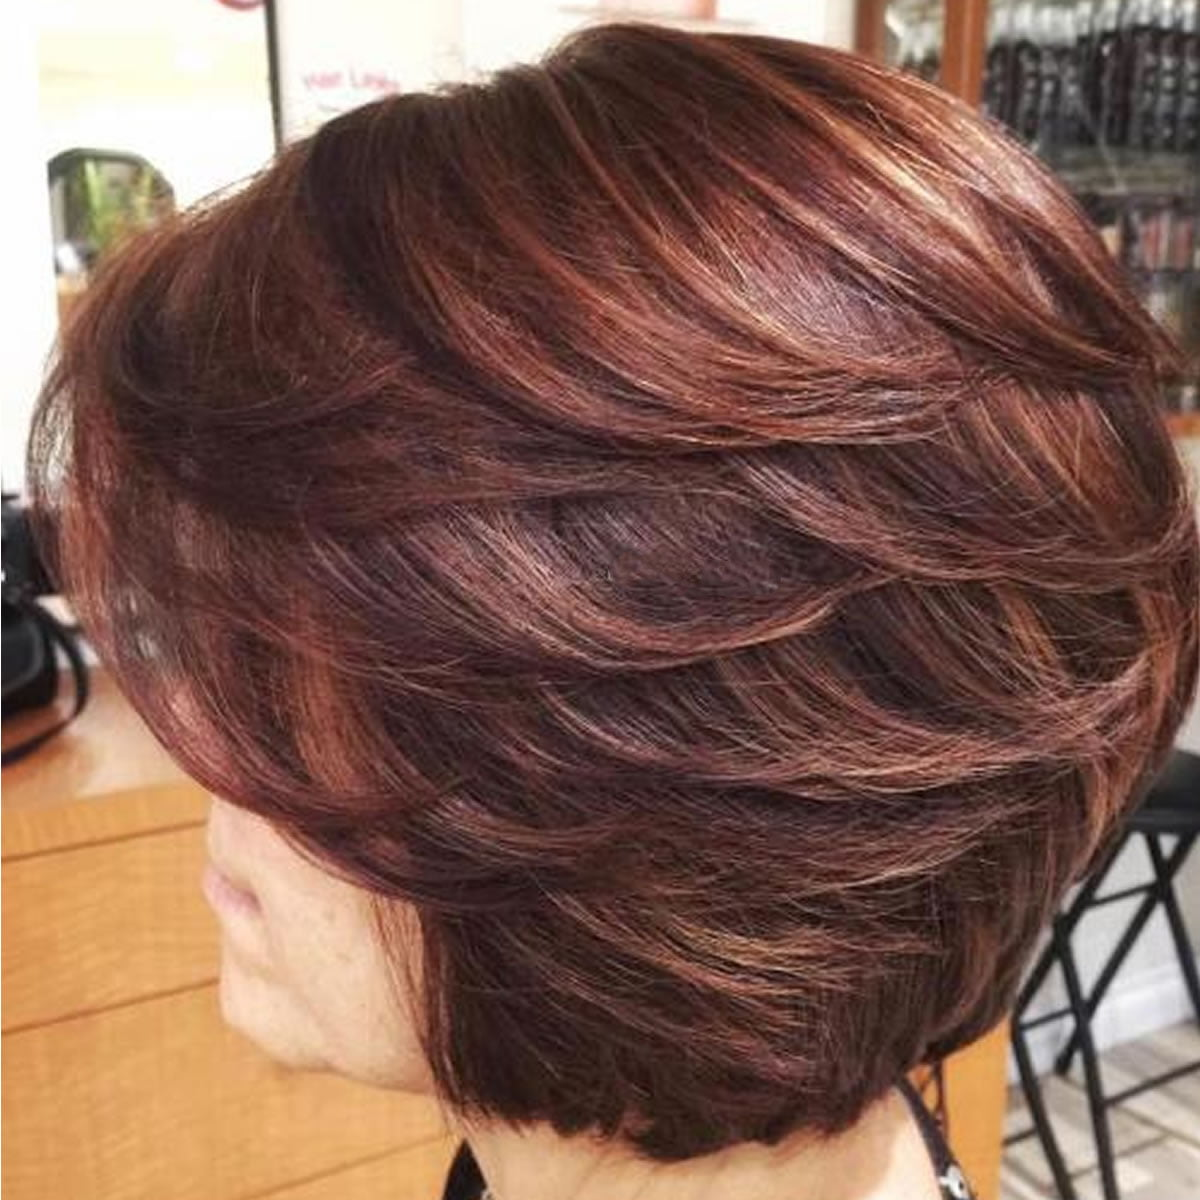 2018 Haircuts for Older women Over 50 - New Trend Hair ...